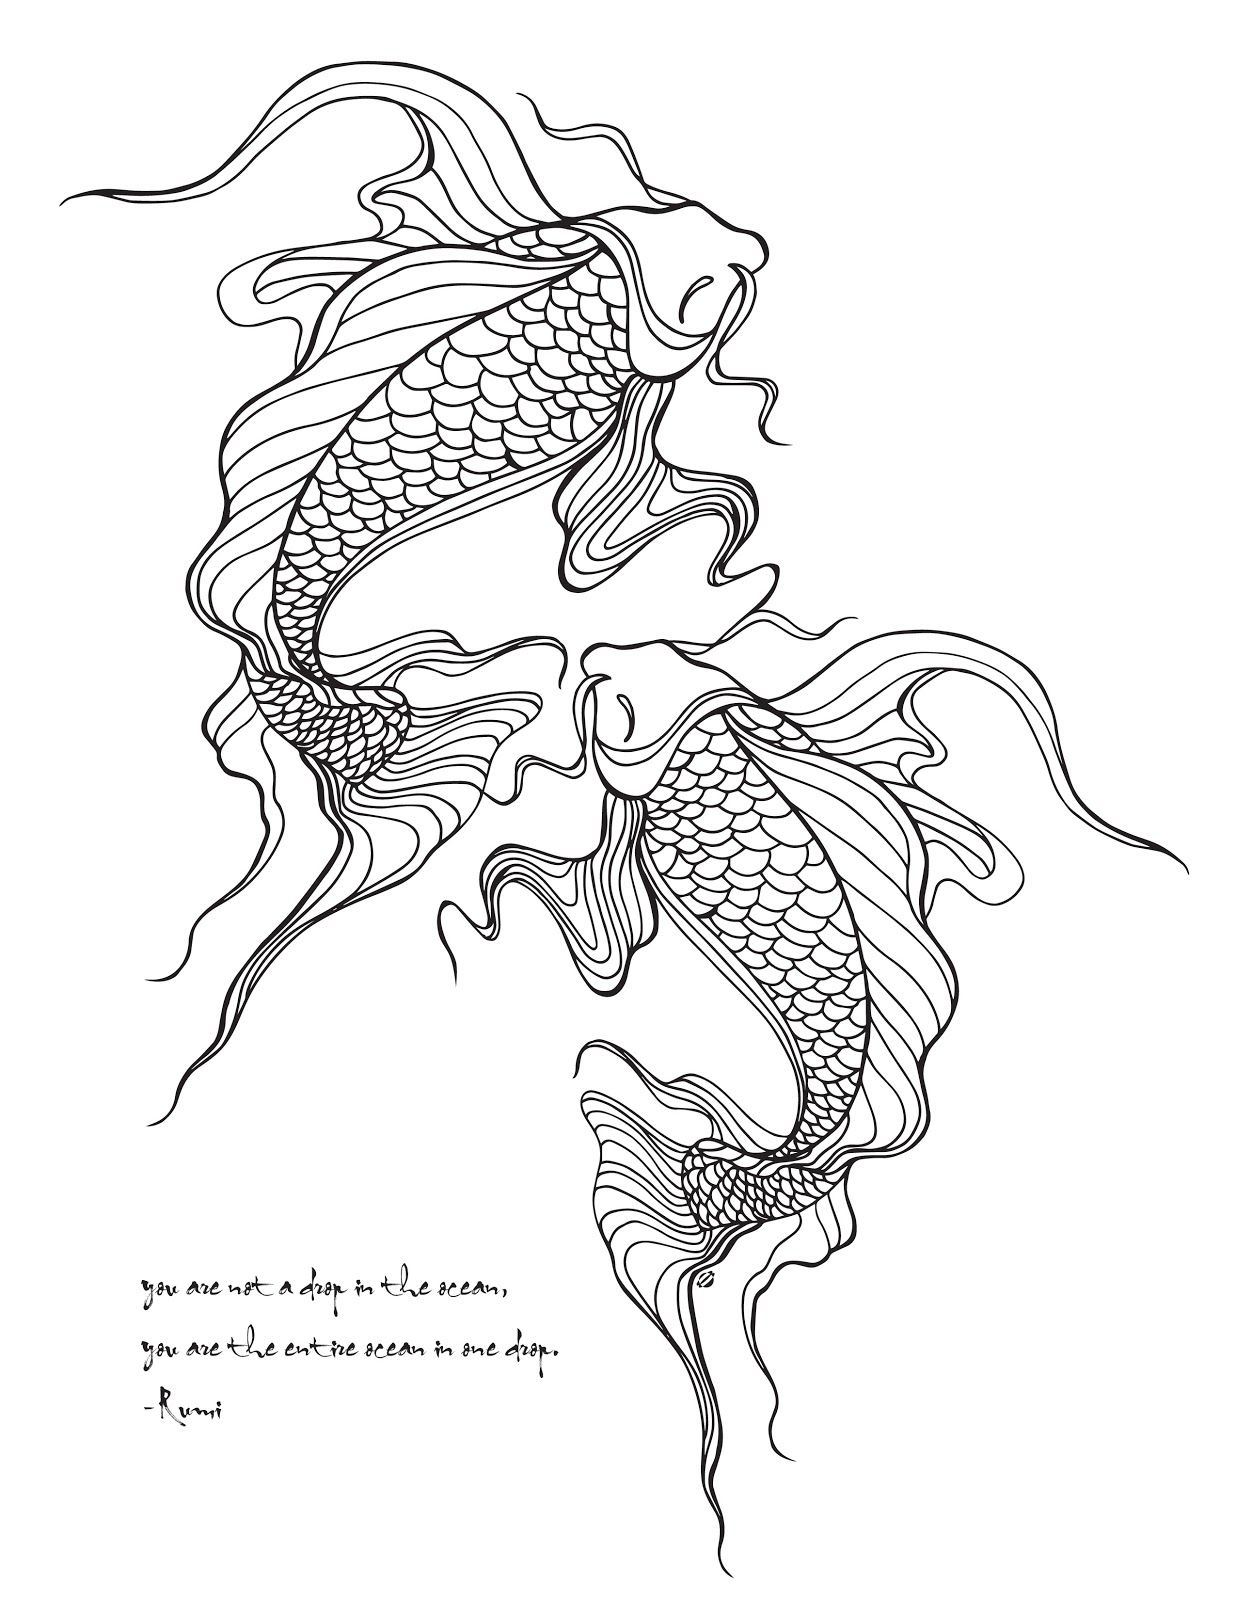 LostBumblebee C2015 MDBN GROWN UP COLOURING COLORING SHEETS KOI FISH